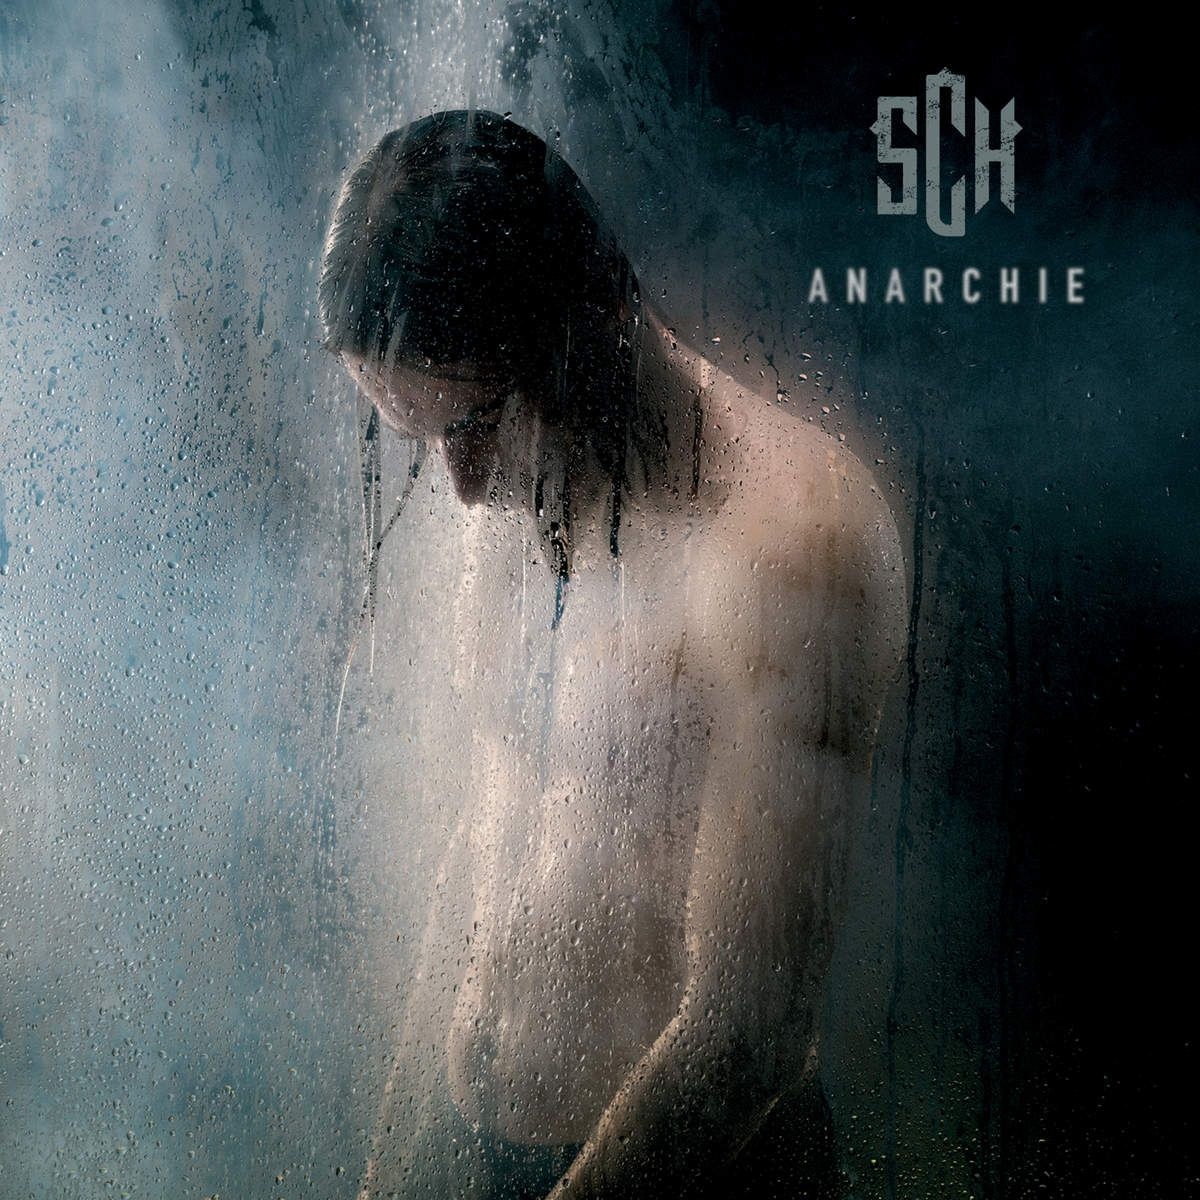 Sch - Anarchie album cover